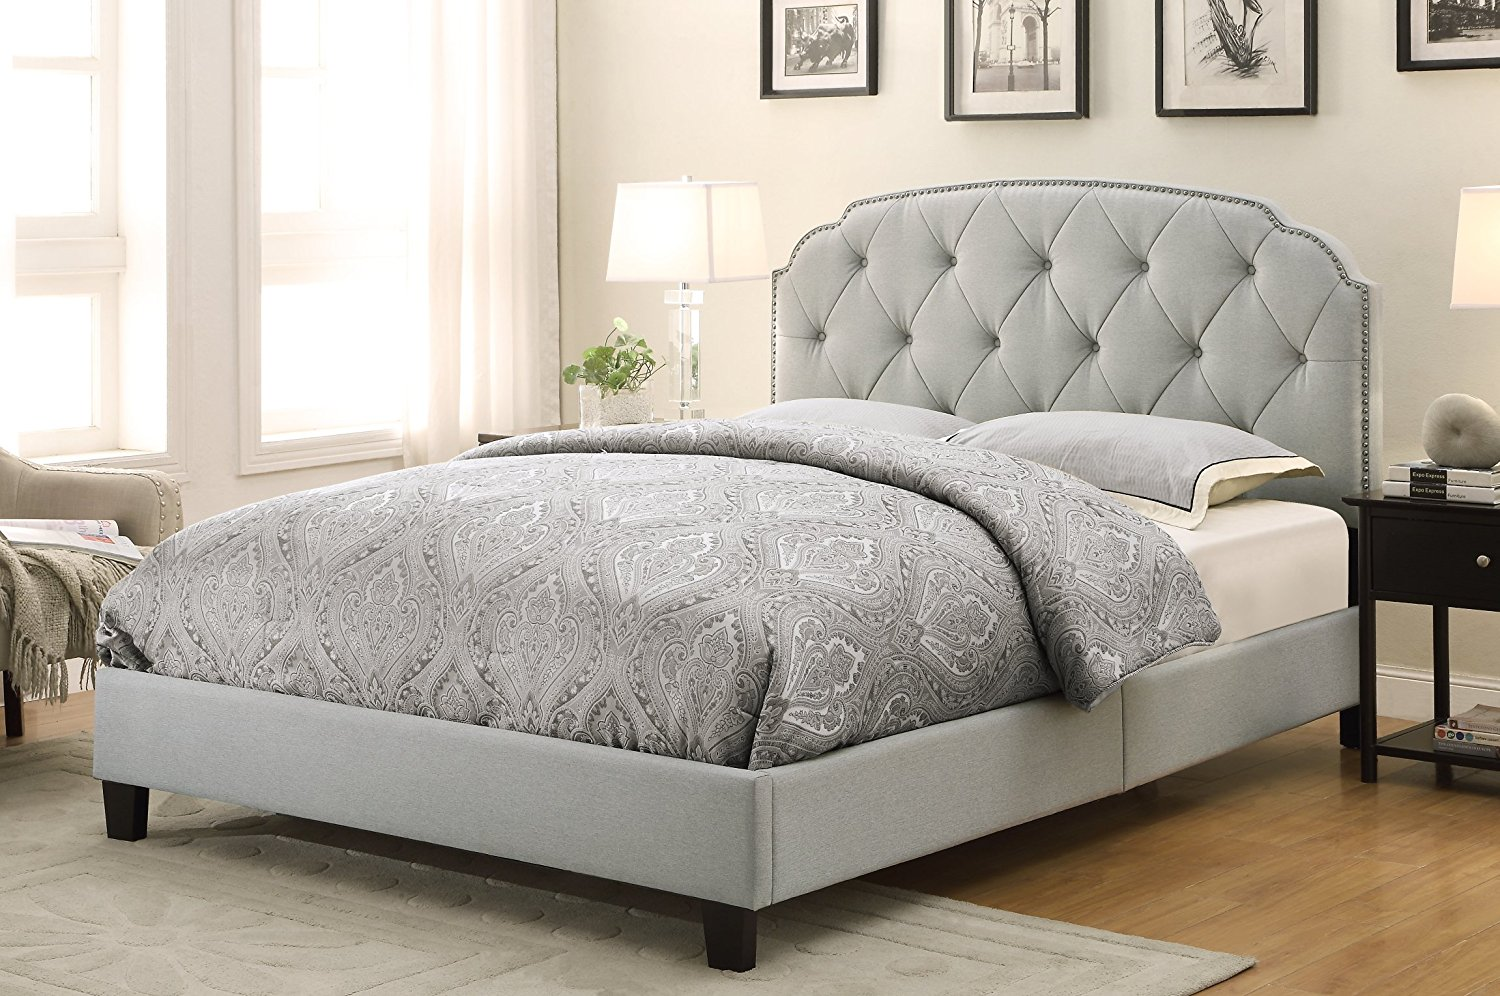 Image of: Gray Upholstered King Bed With Storage